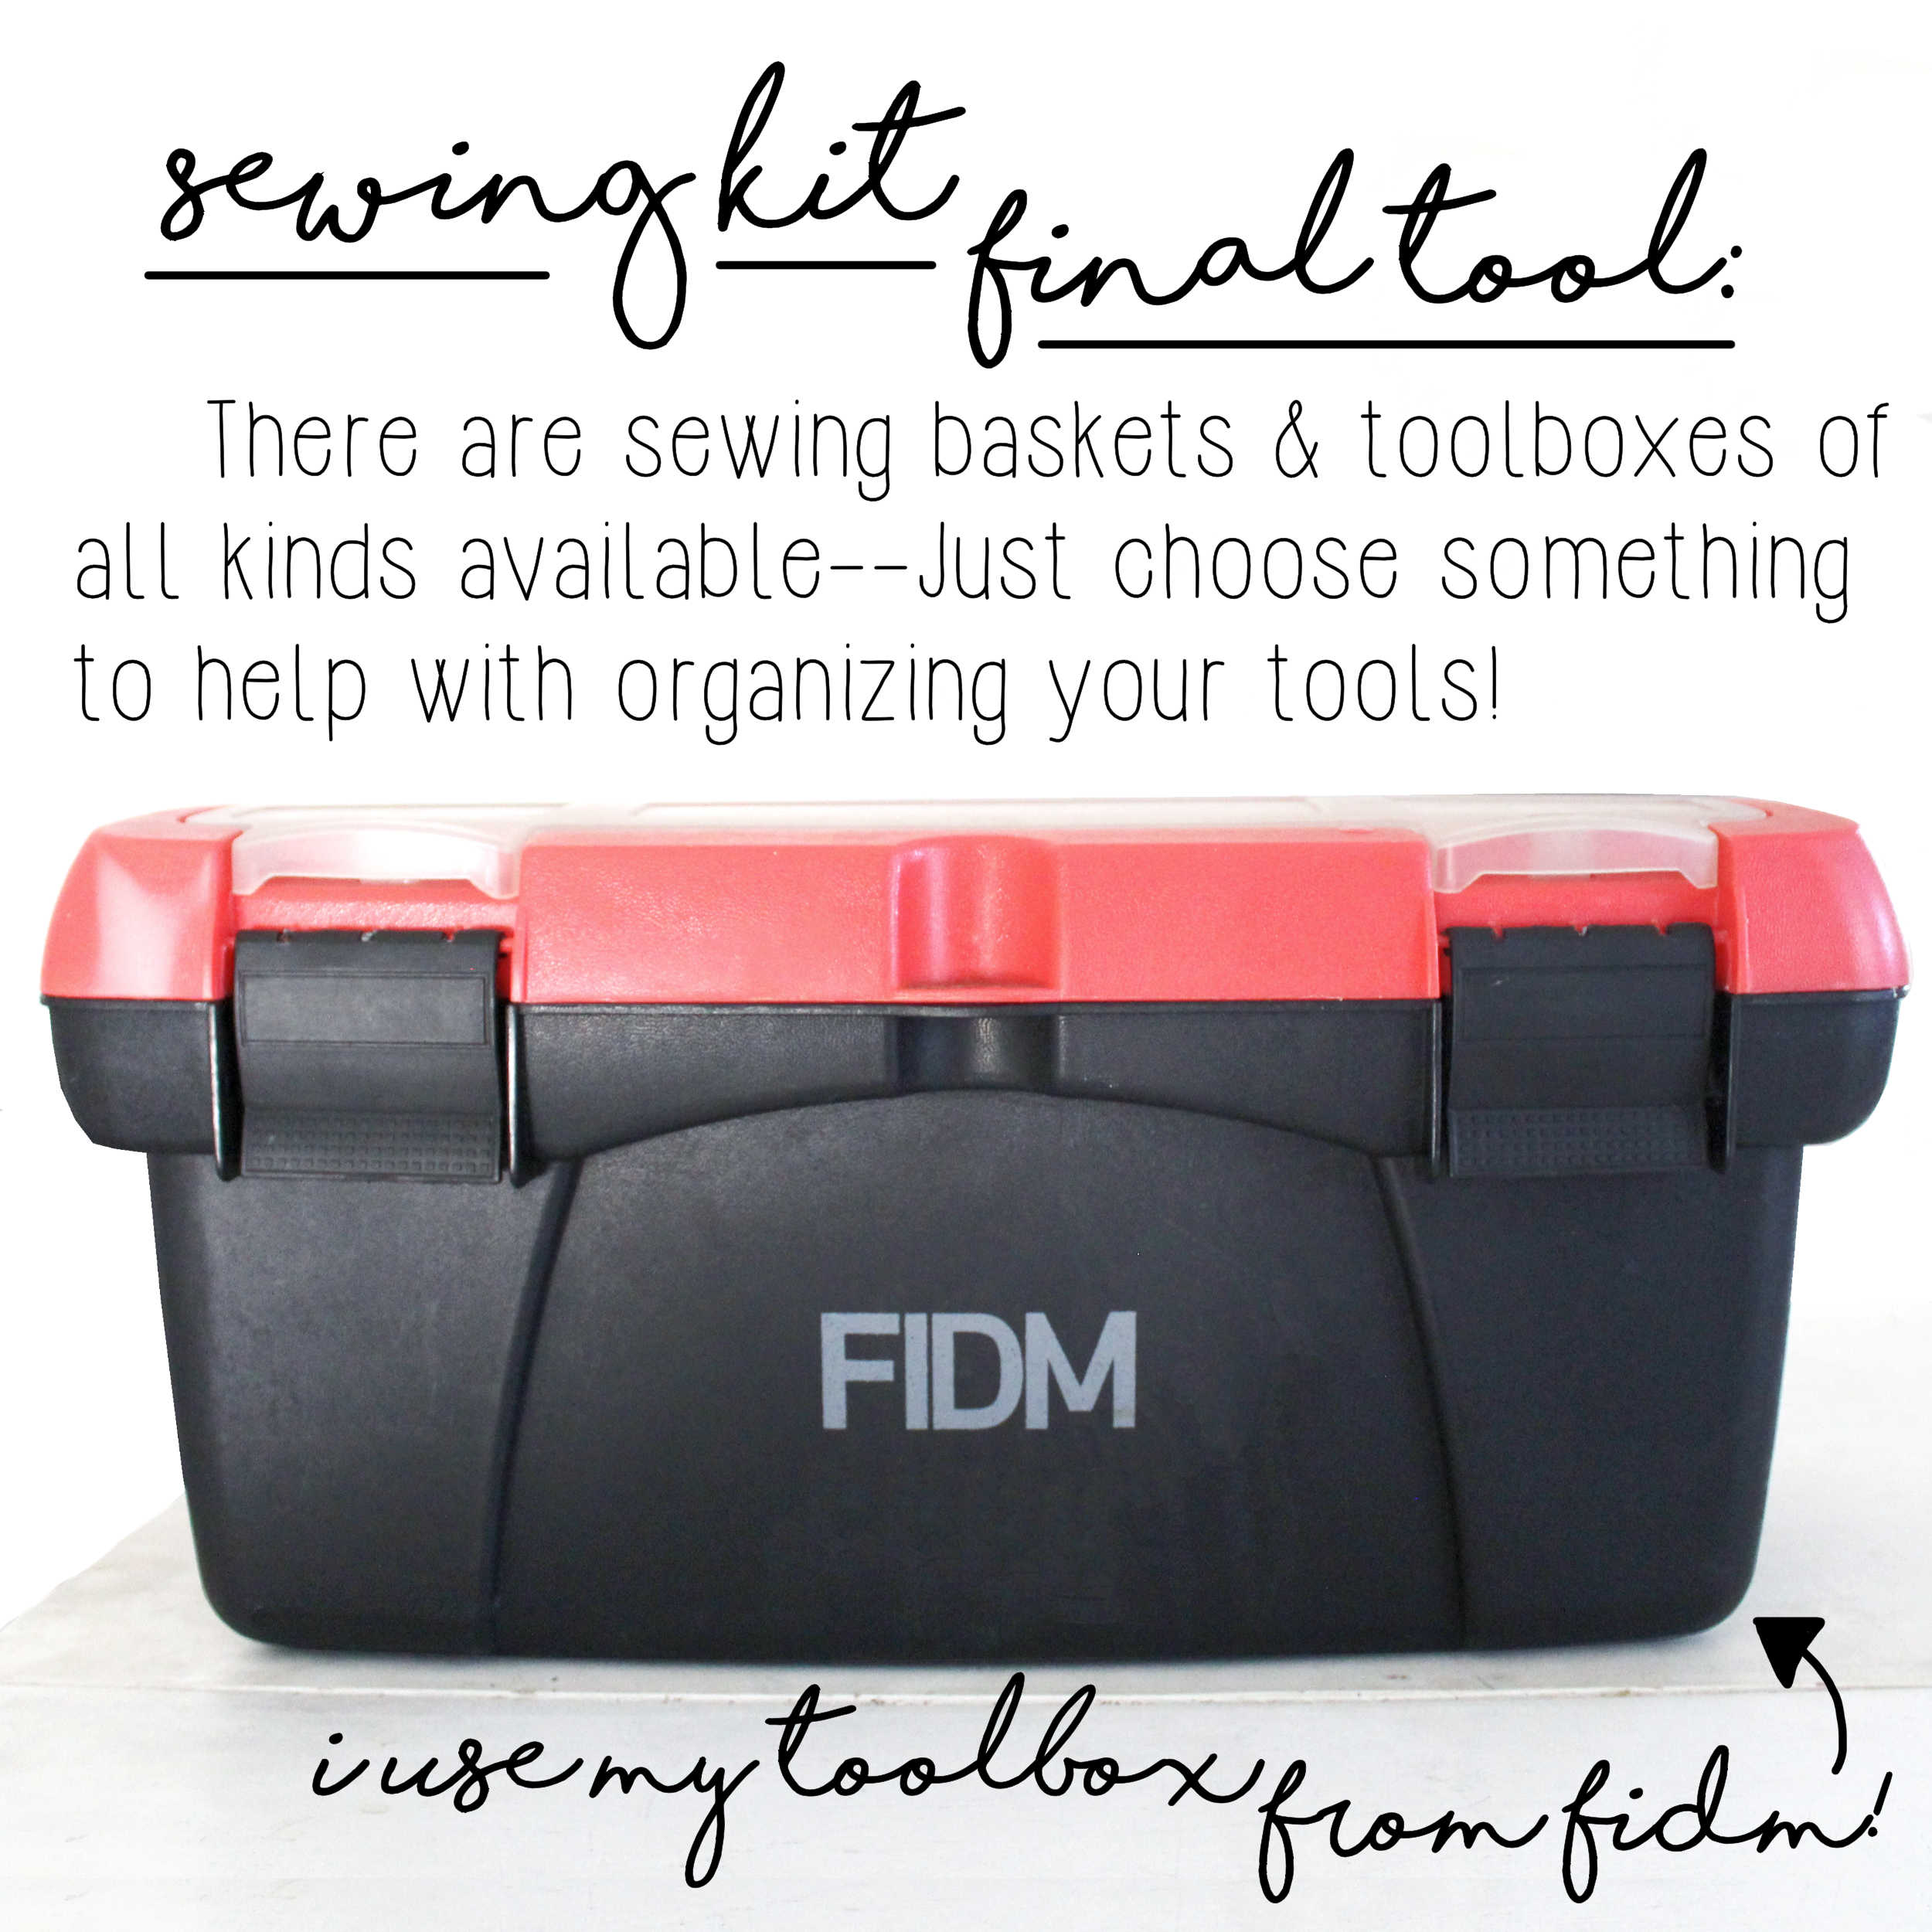 How To Build A Sewing Kit: Final Tool, Sewing Box/Toolbox